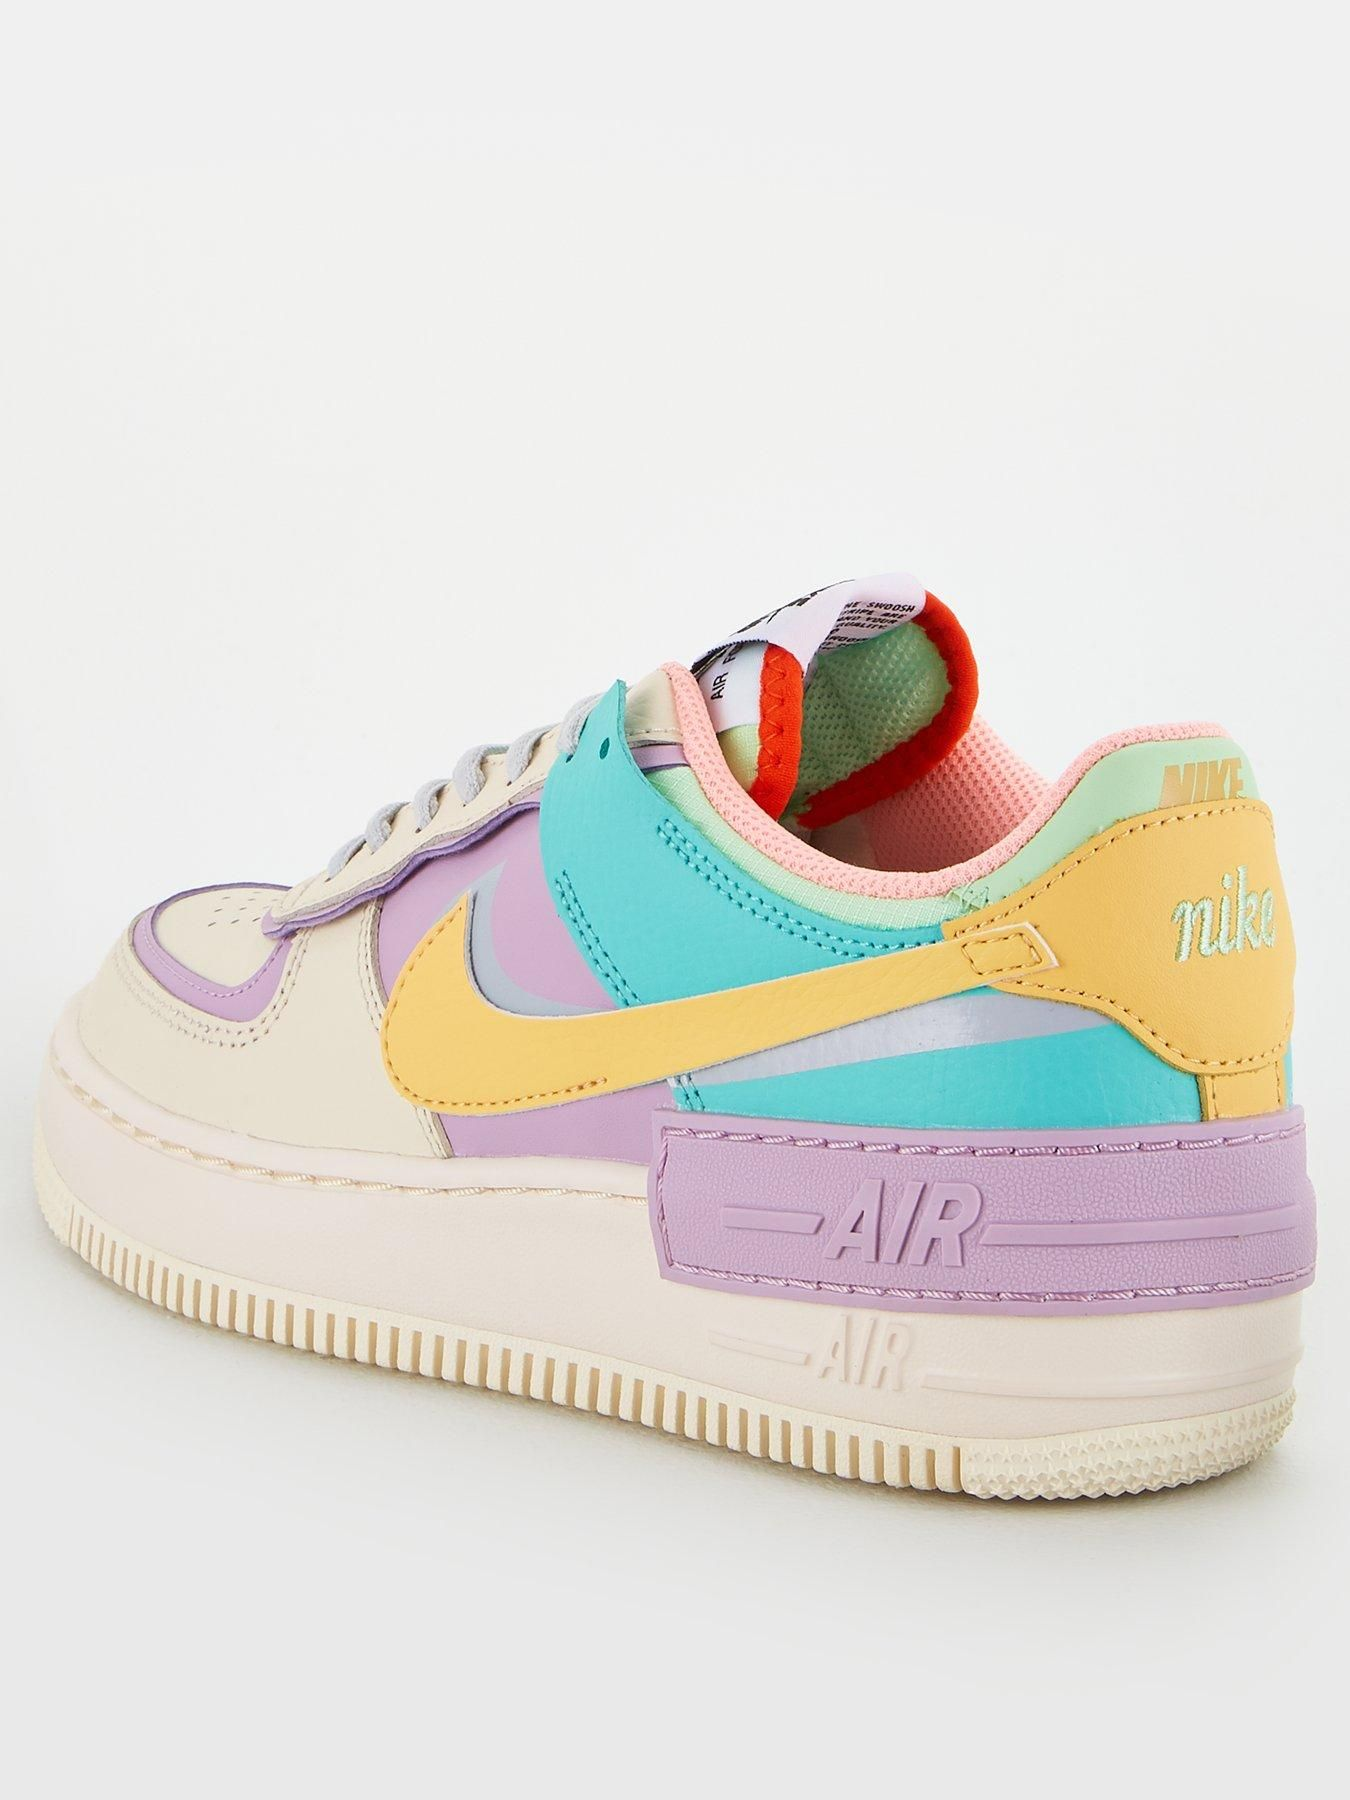 Nike Af1 Shadow White/Gold , White/Gold, Size 8, Women